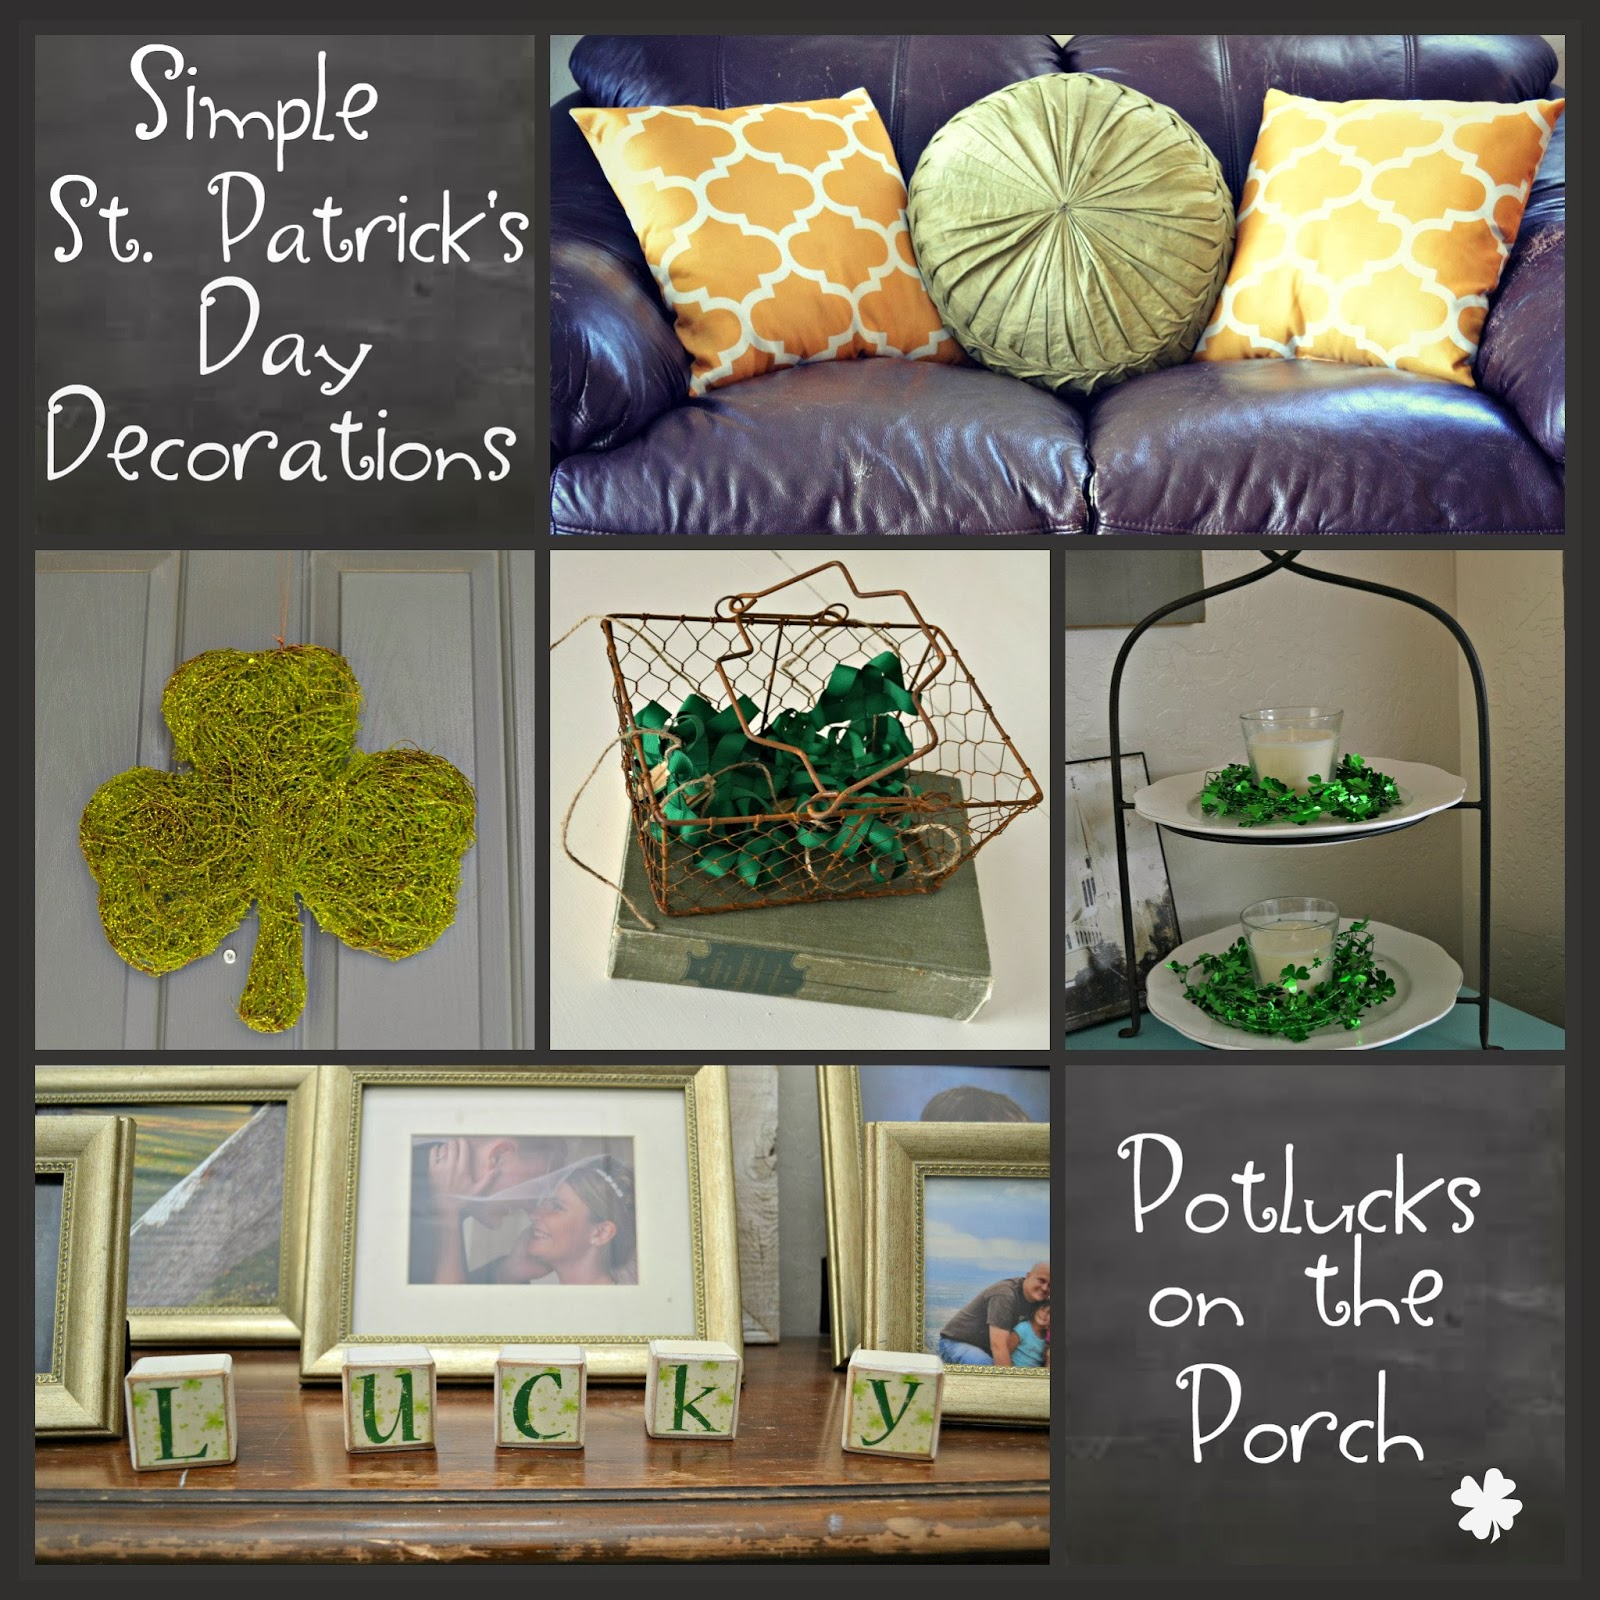 potlucks on the porch simple st patrick 39 s day decorations. Black Bedroom Furniture Sets. Home Design Ideas